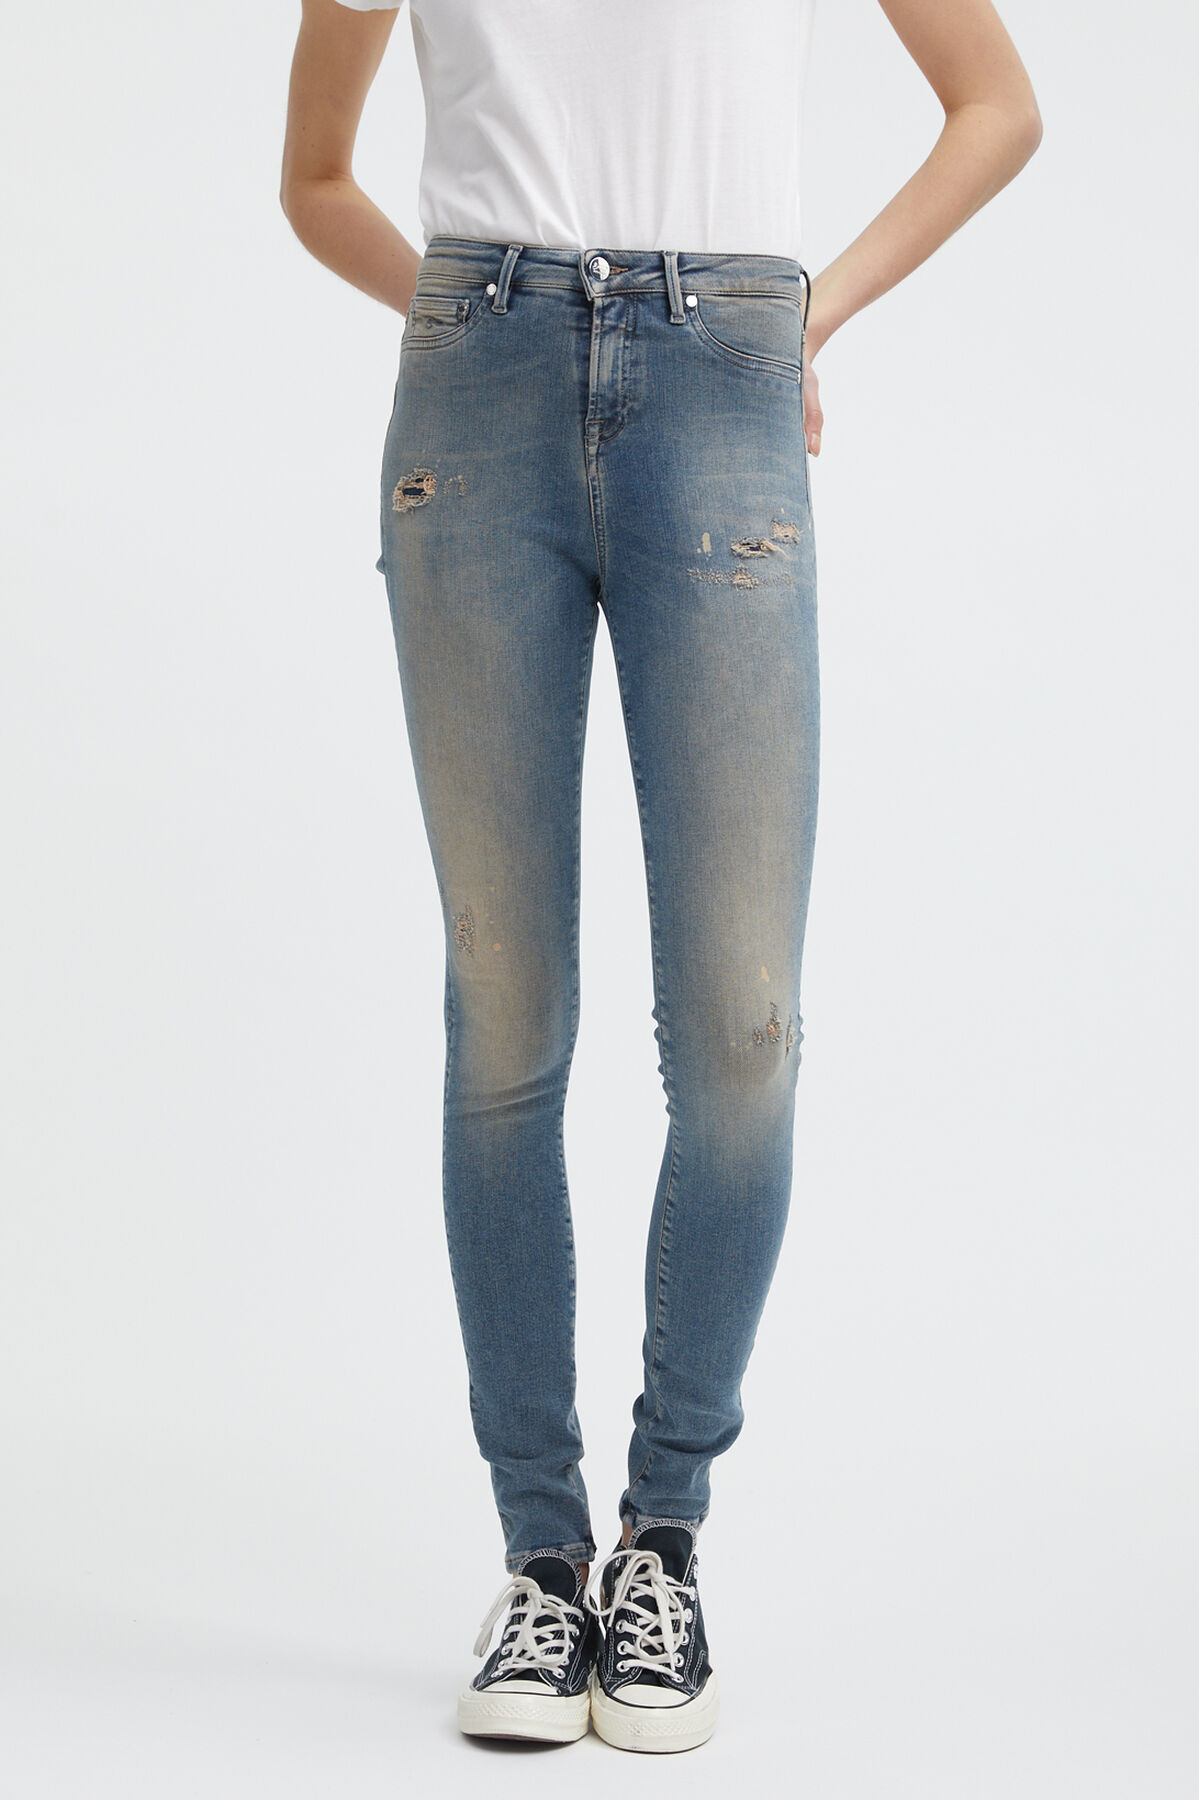 NEEDLE Heavy Fade Denim - High-rise, Skinny Fit